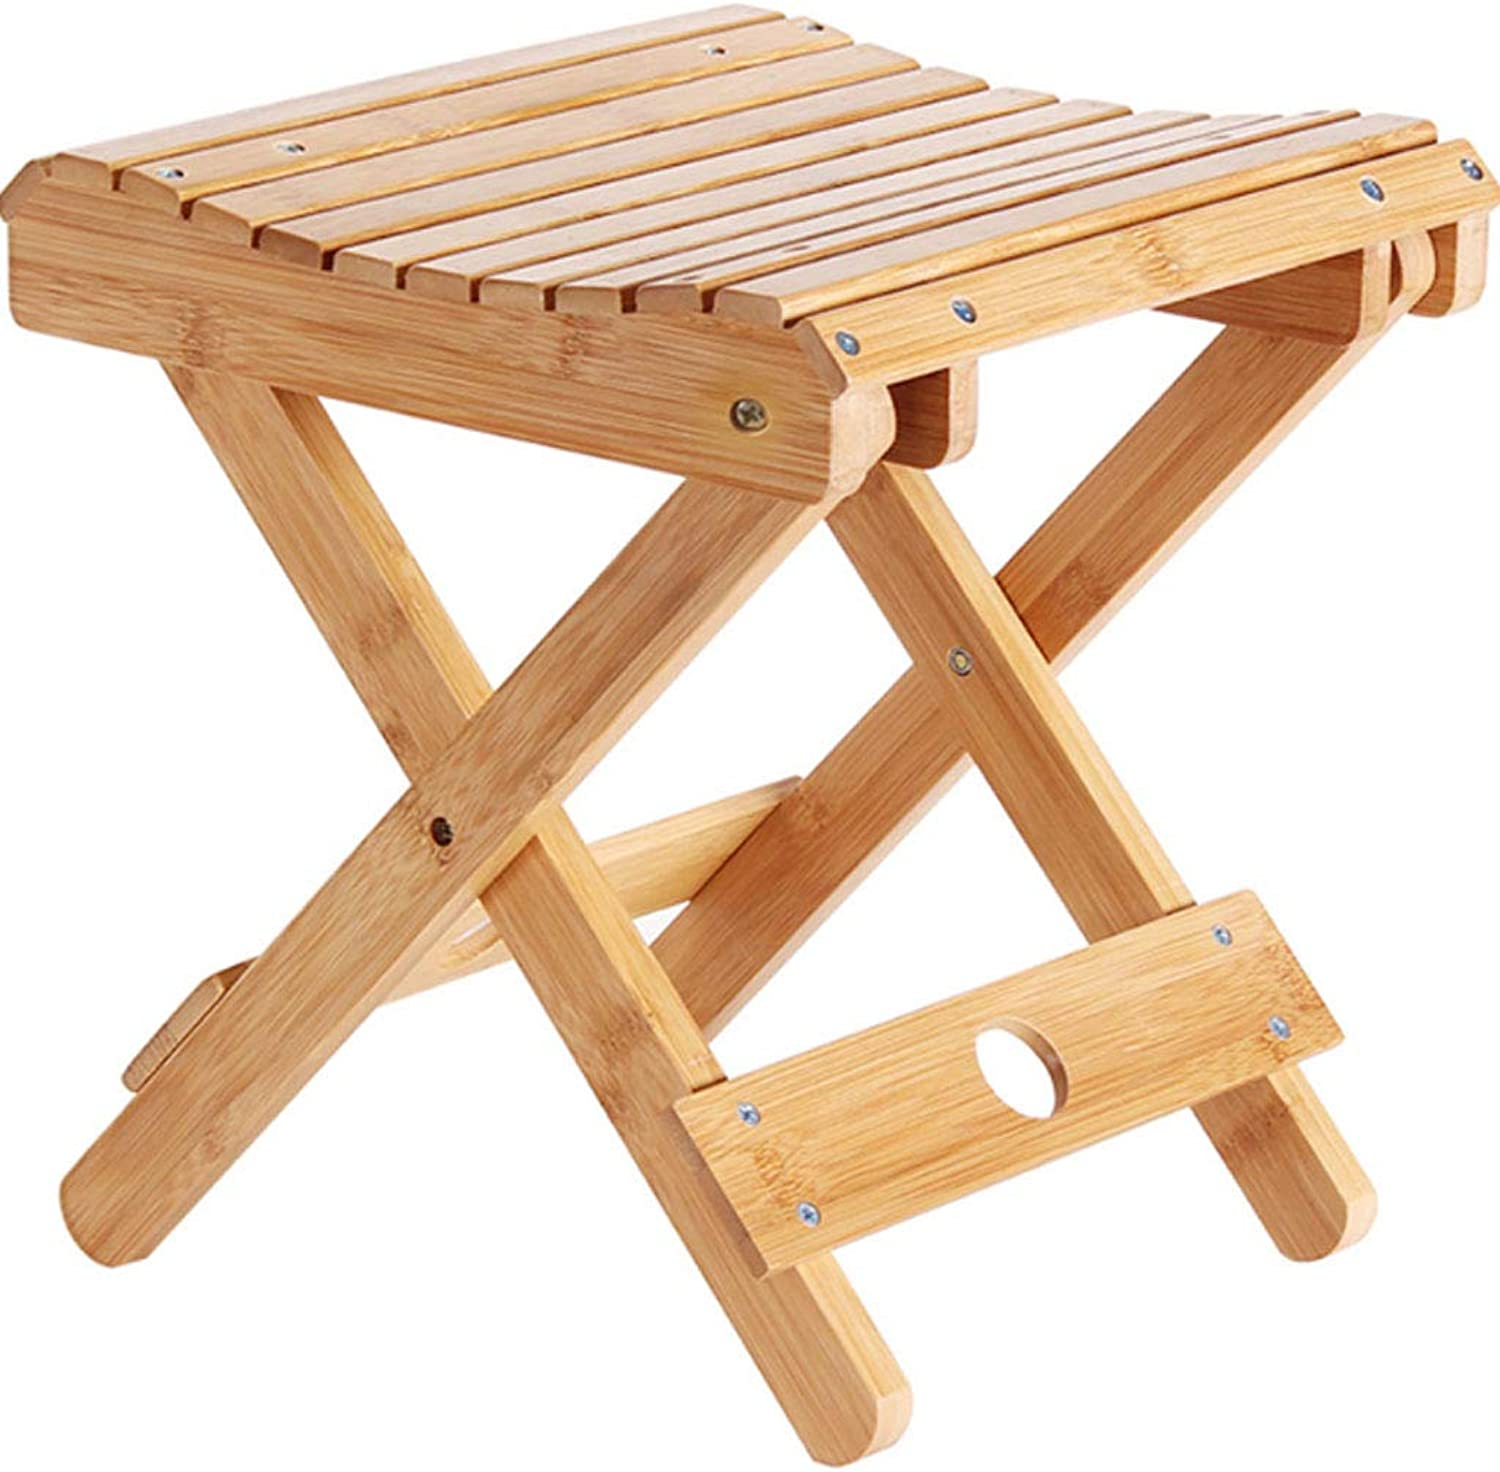 NJ stools  Household Folding Wooden Bench 29x26cm (Size   Full plate type 29x26x31.5cm)